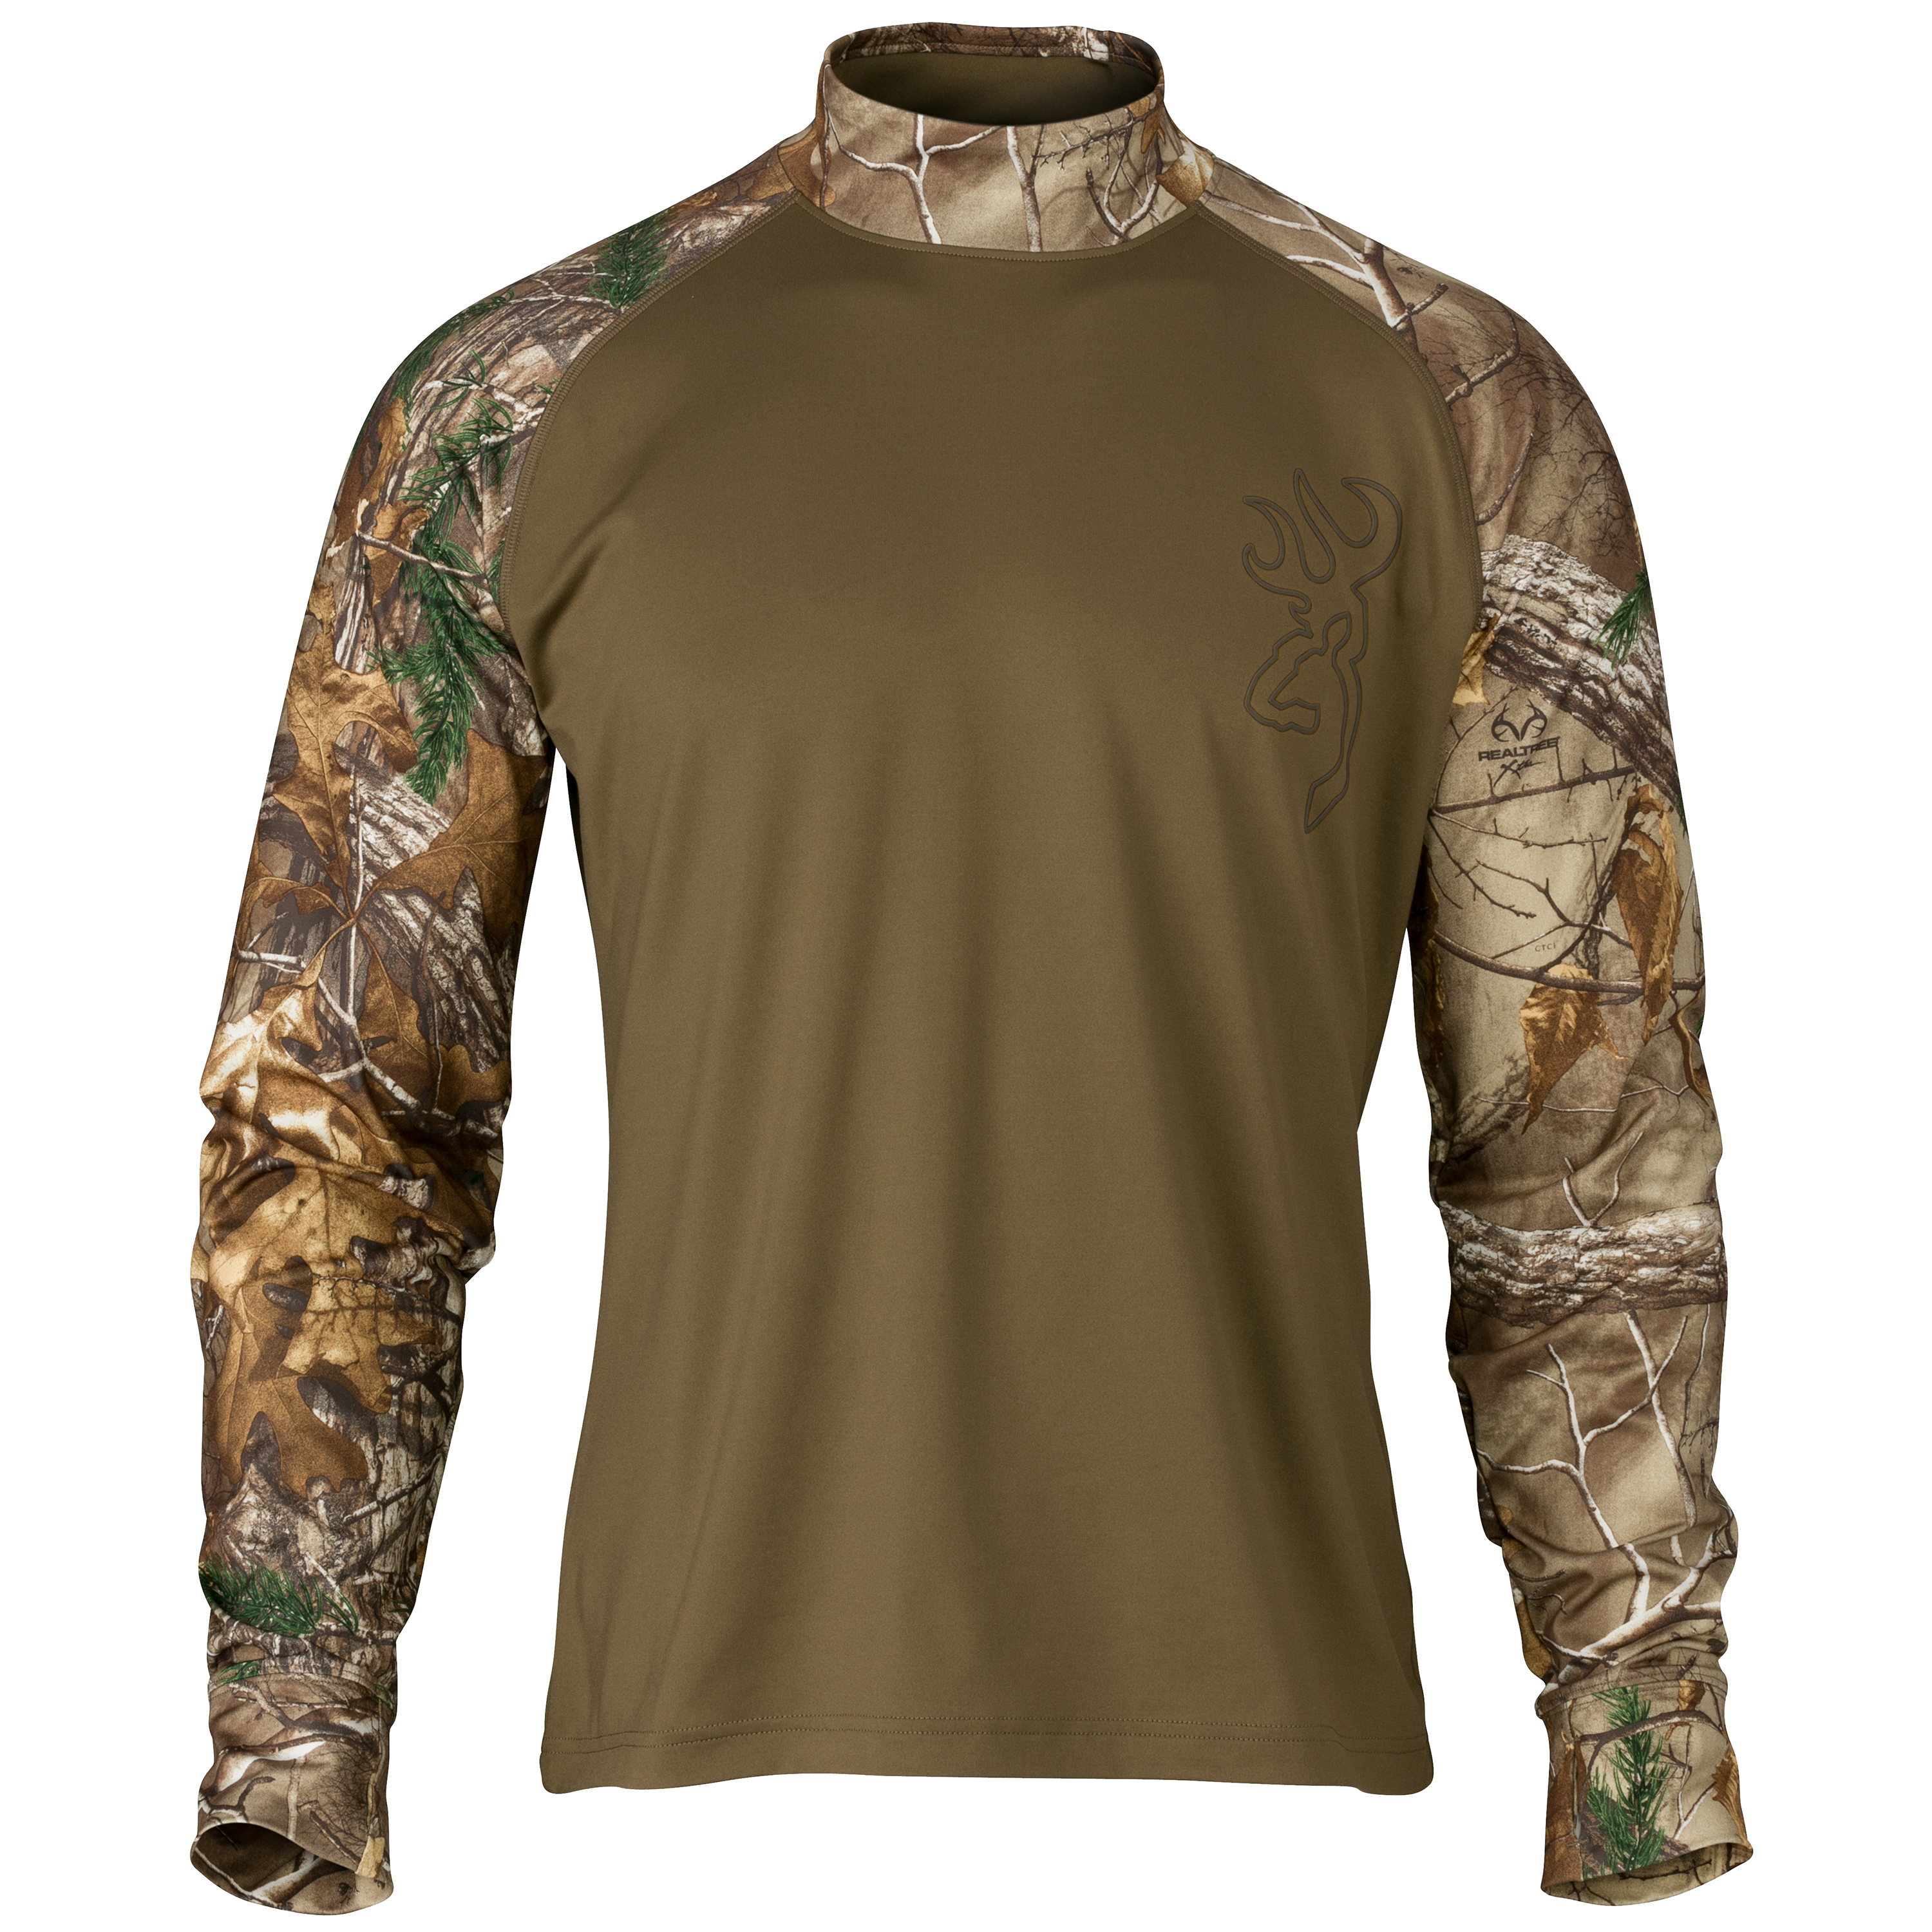 Browning Hell's Canyon Riser Base Layer Top Realtree Xtra, 2X-Large